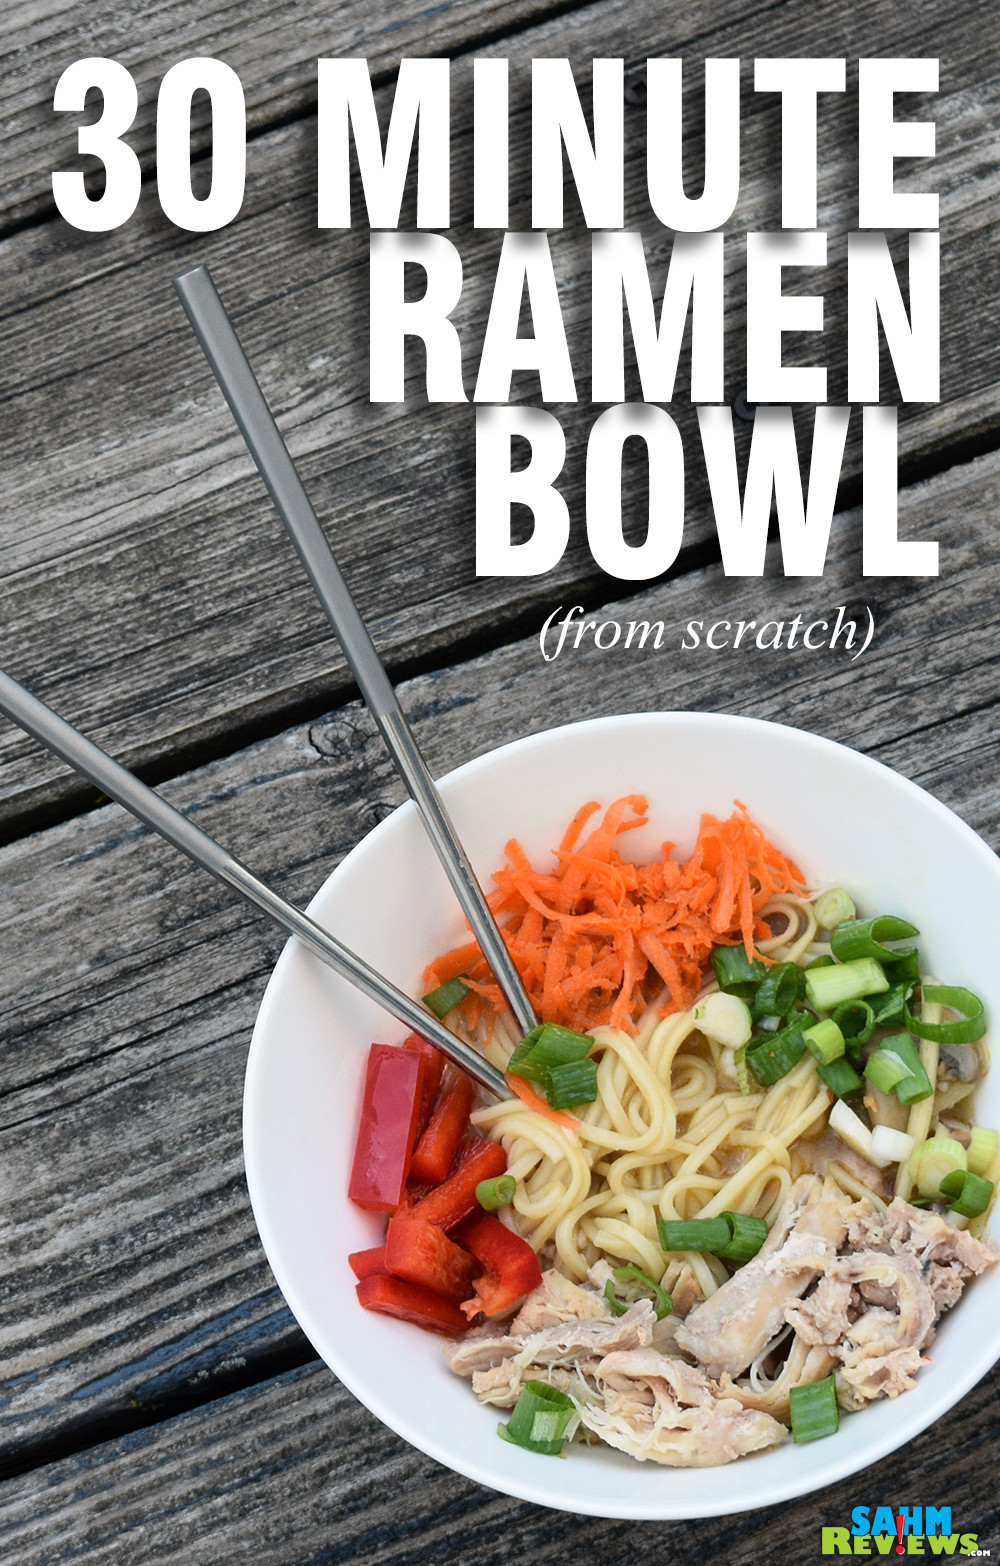 Deliciousness! Try this 30-Minute Chicken Ramen bowl recipe using the Mealthy MultiPot Pressure Cooker. - SahmReviews.com